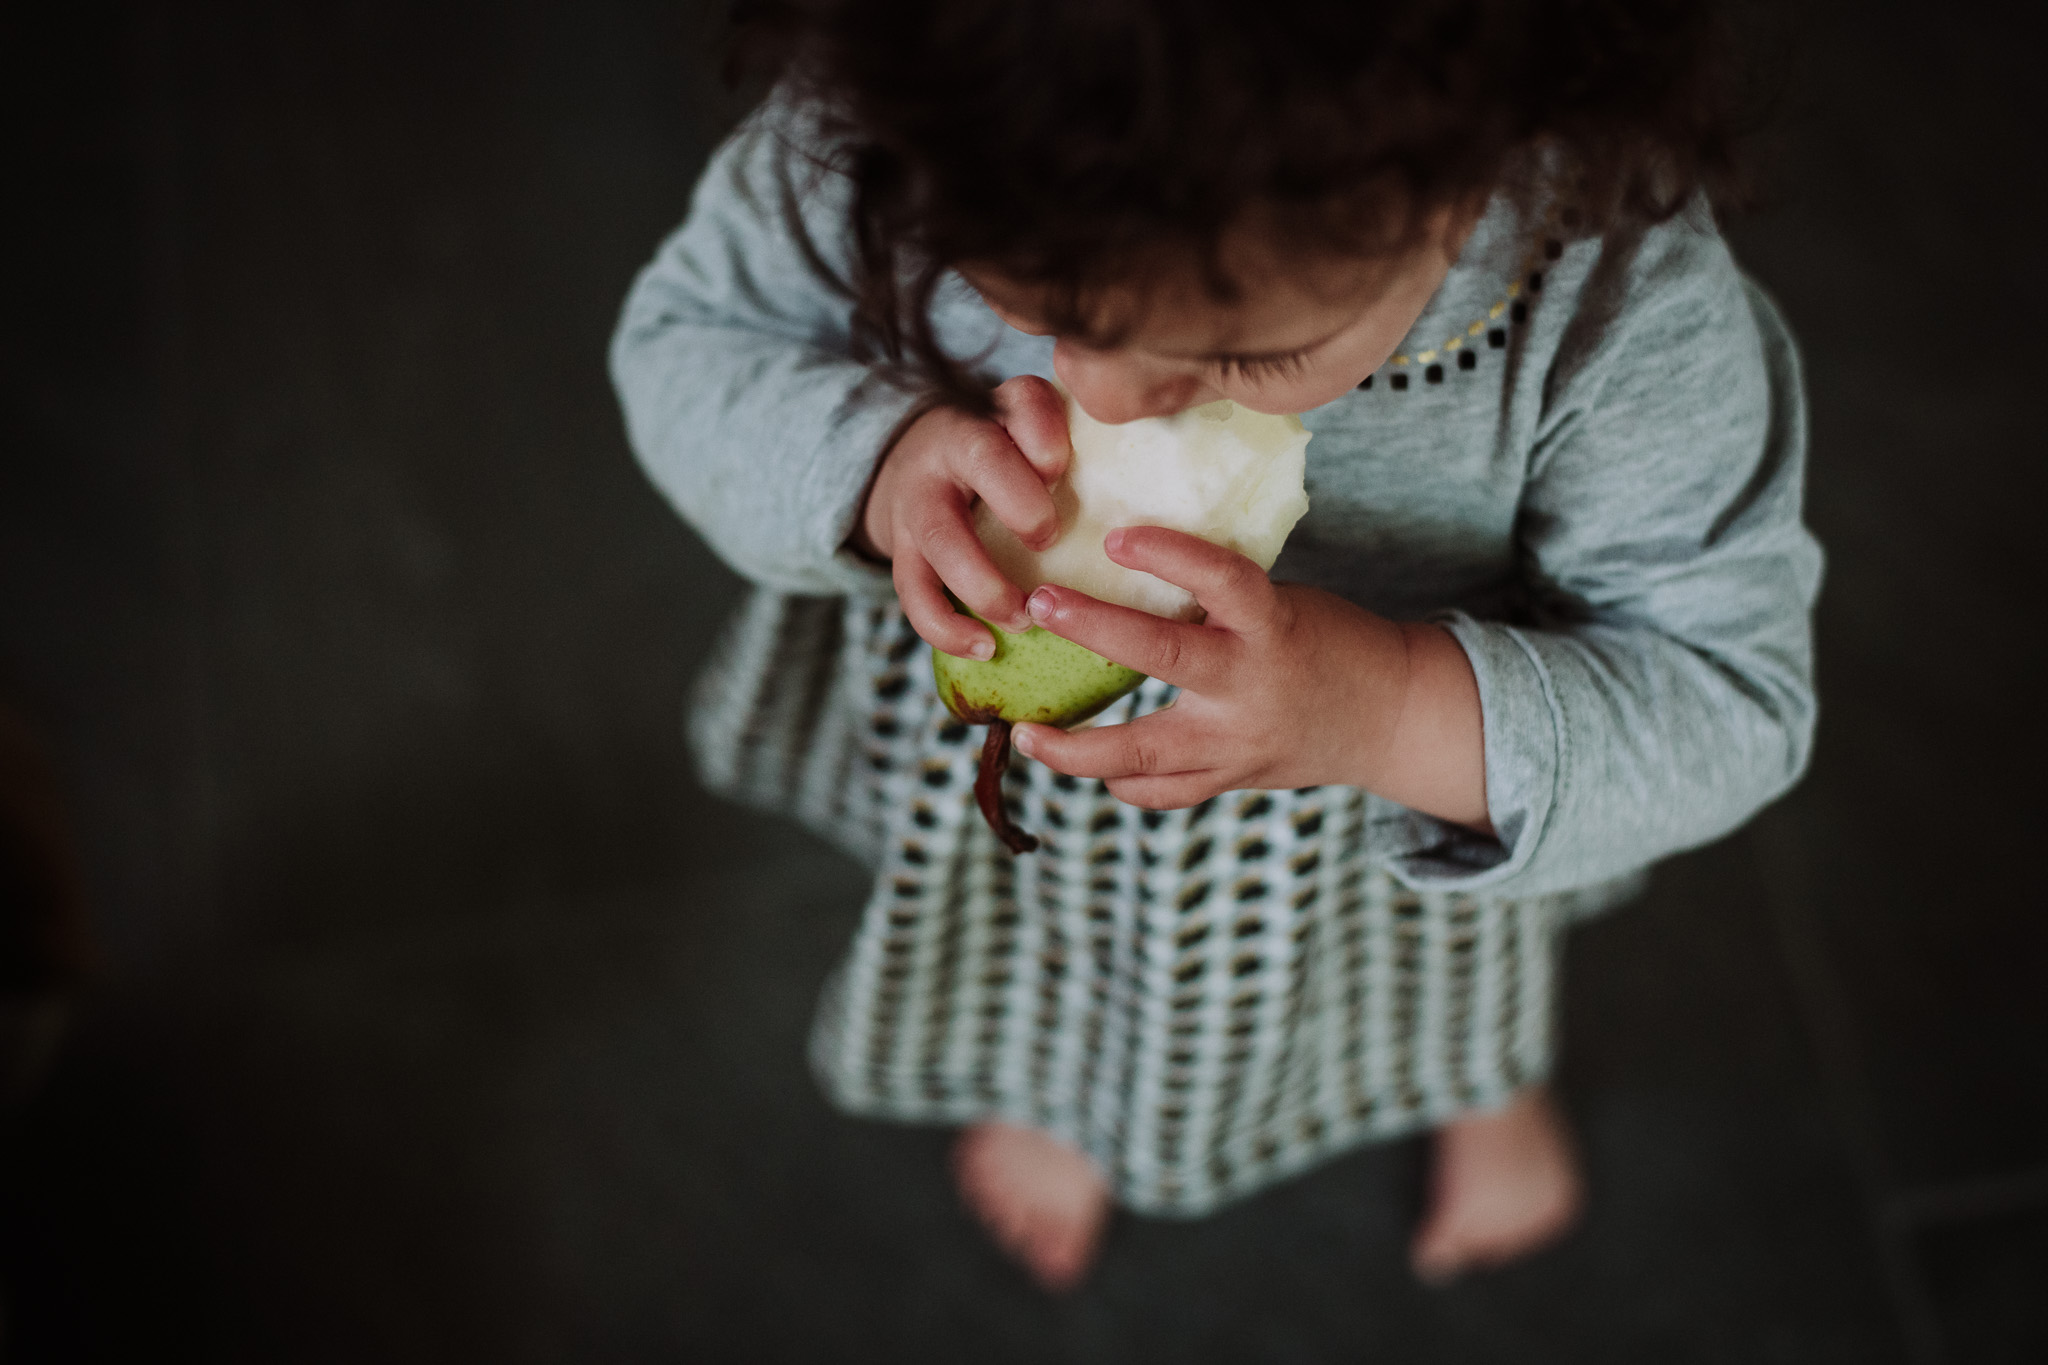 dc photographer photograph of baby eating a pear